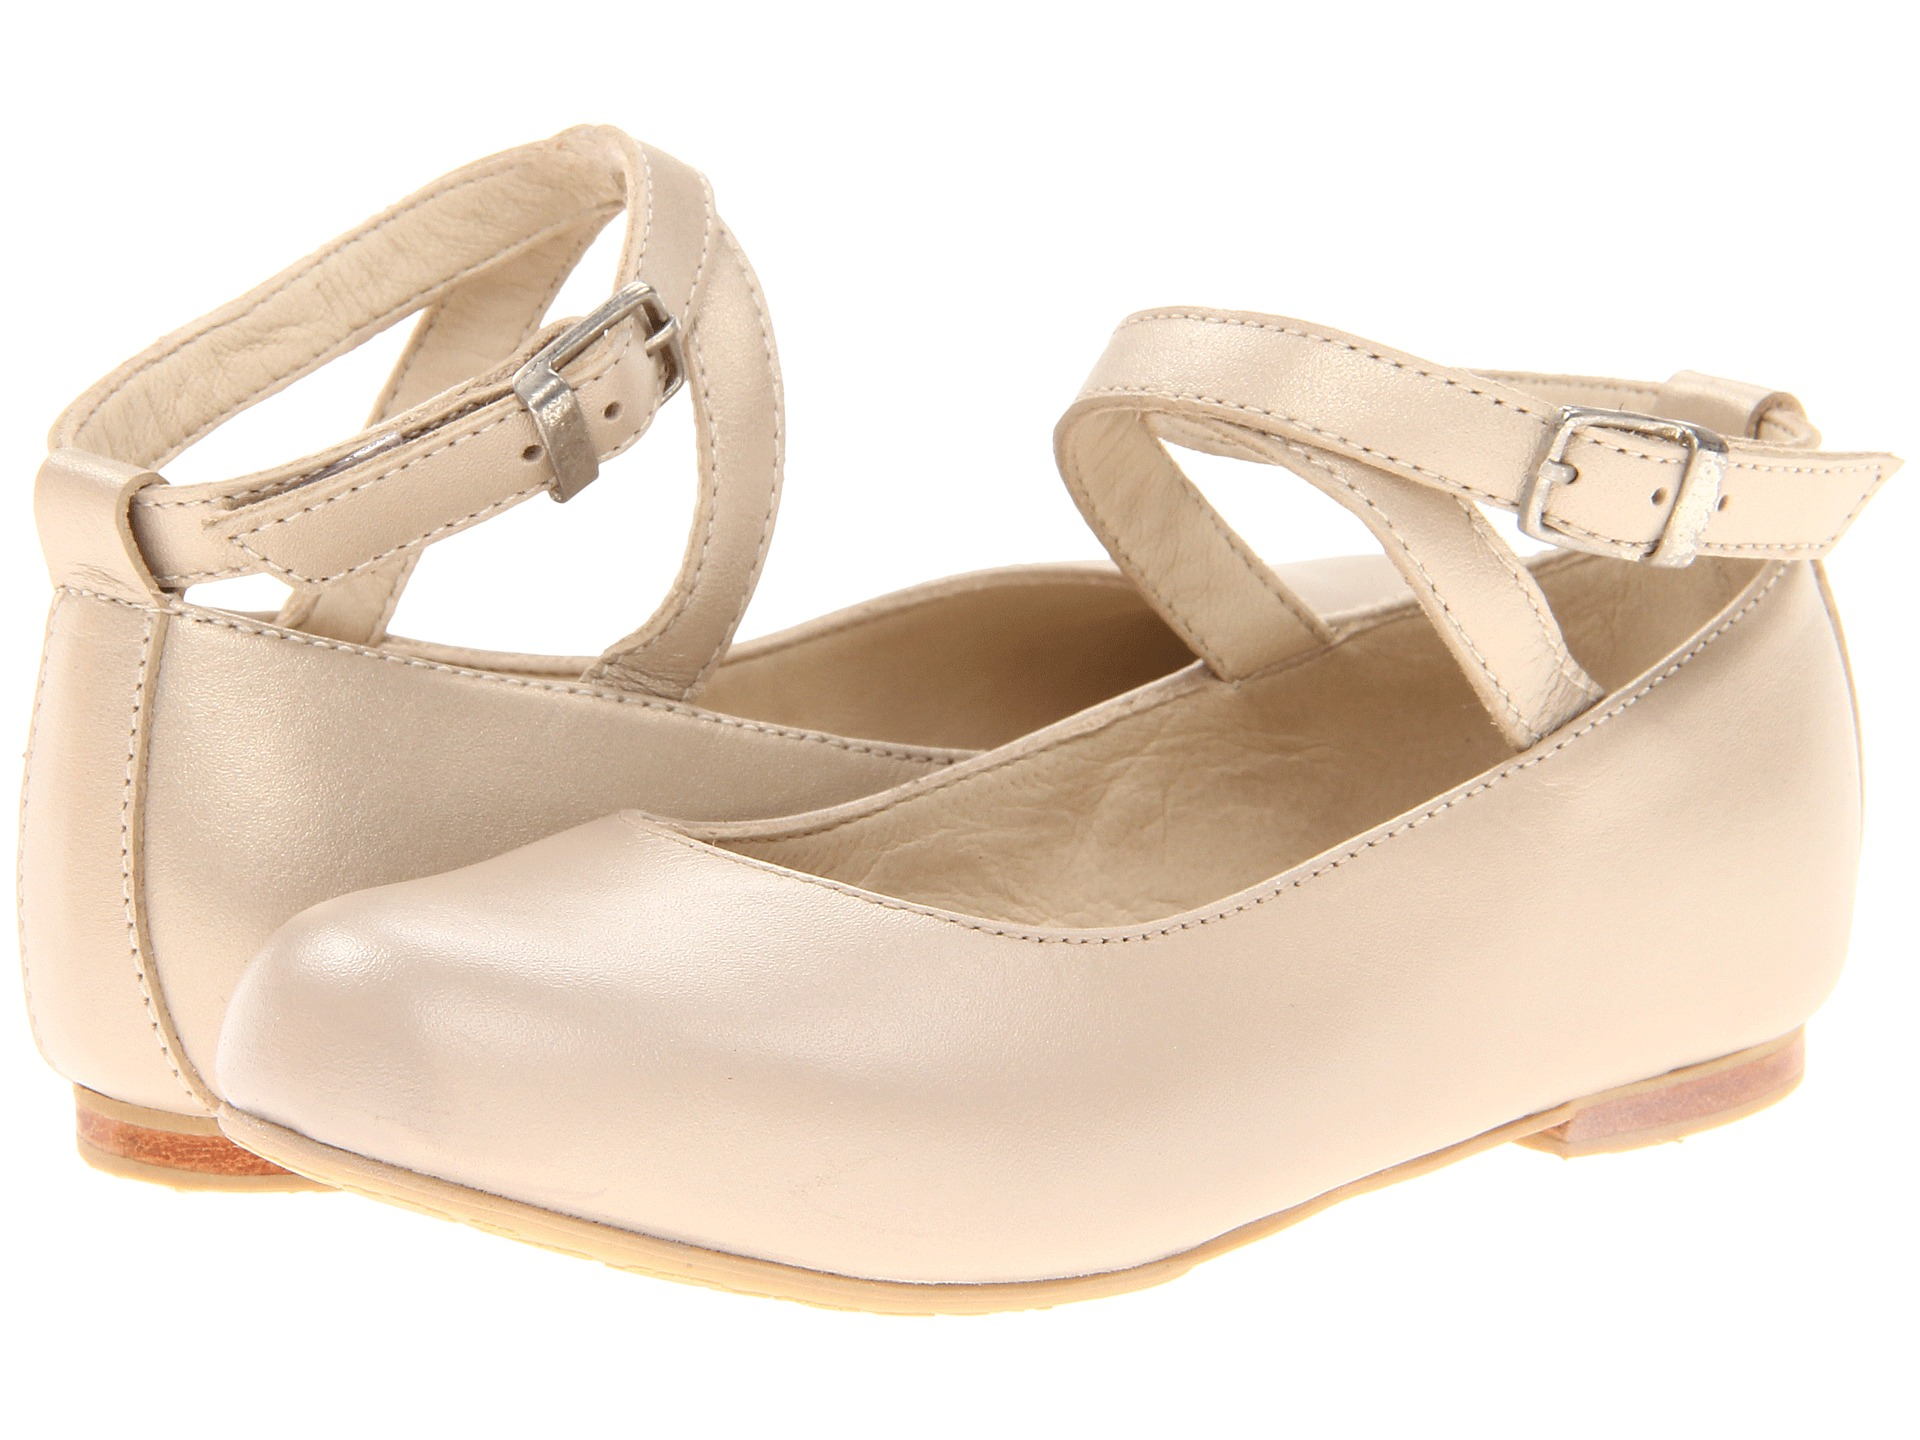 kensie girl Crystal Embellished Ballet Flat (Toddler, Little Kid & Big Kid) $ Sam Edelman Felicia Glitter Ballet Flat (Walker, Toddler, Little Kid & Big Kid).